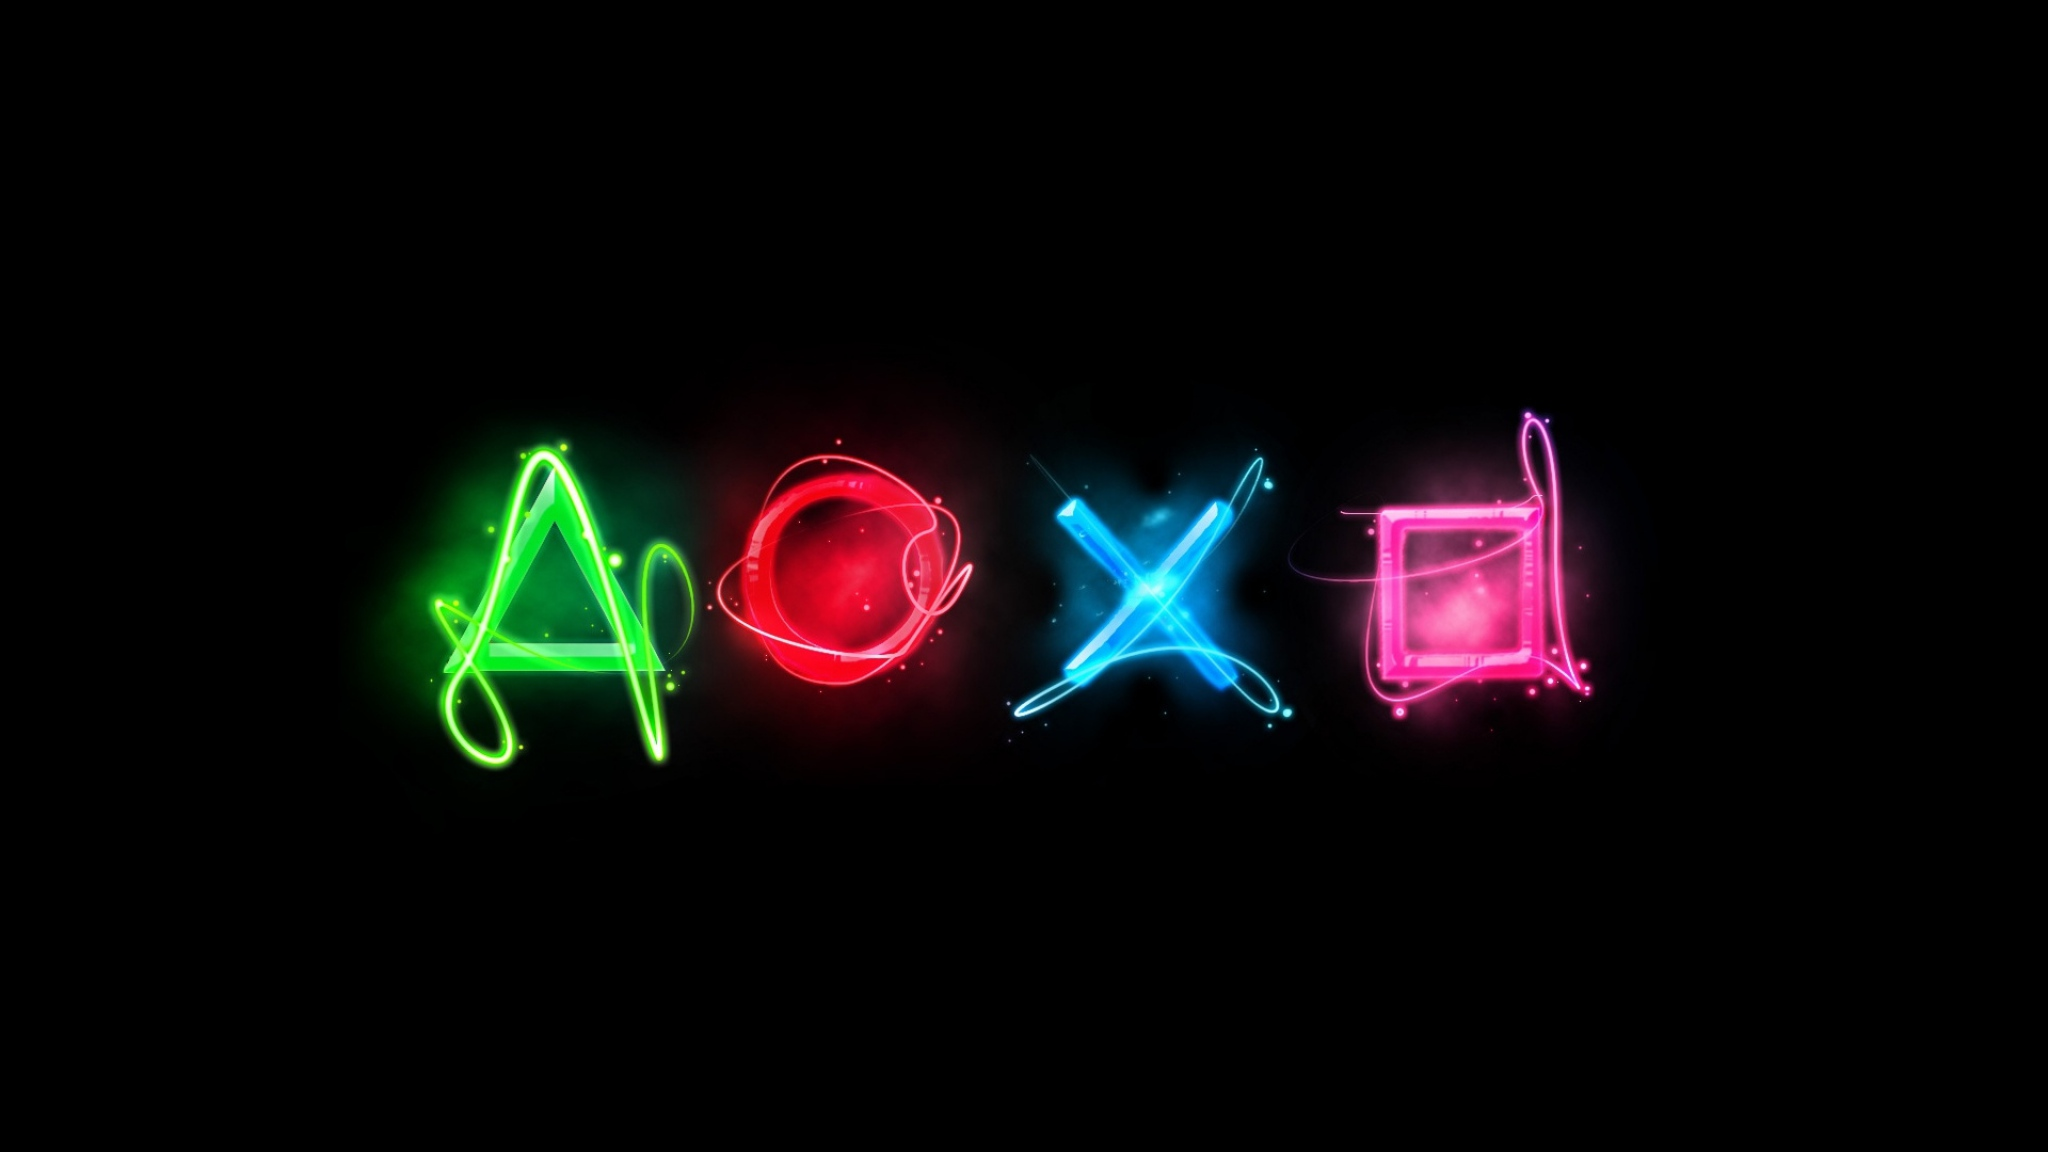 Wallpaper 2048x1152 Playstation Symbols Graphics Keys HD HD 2048x1152